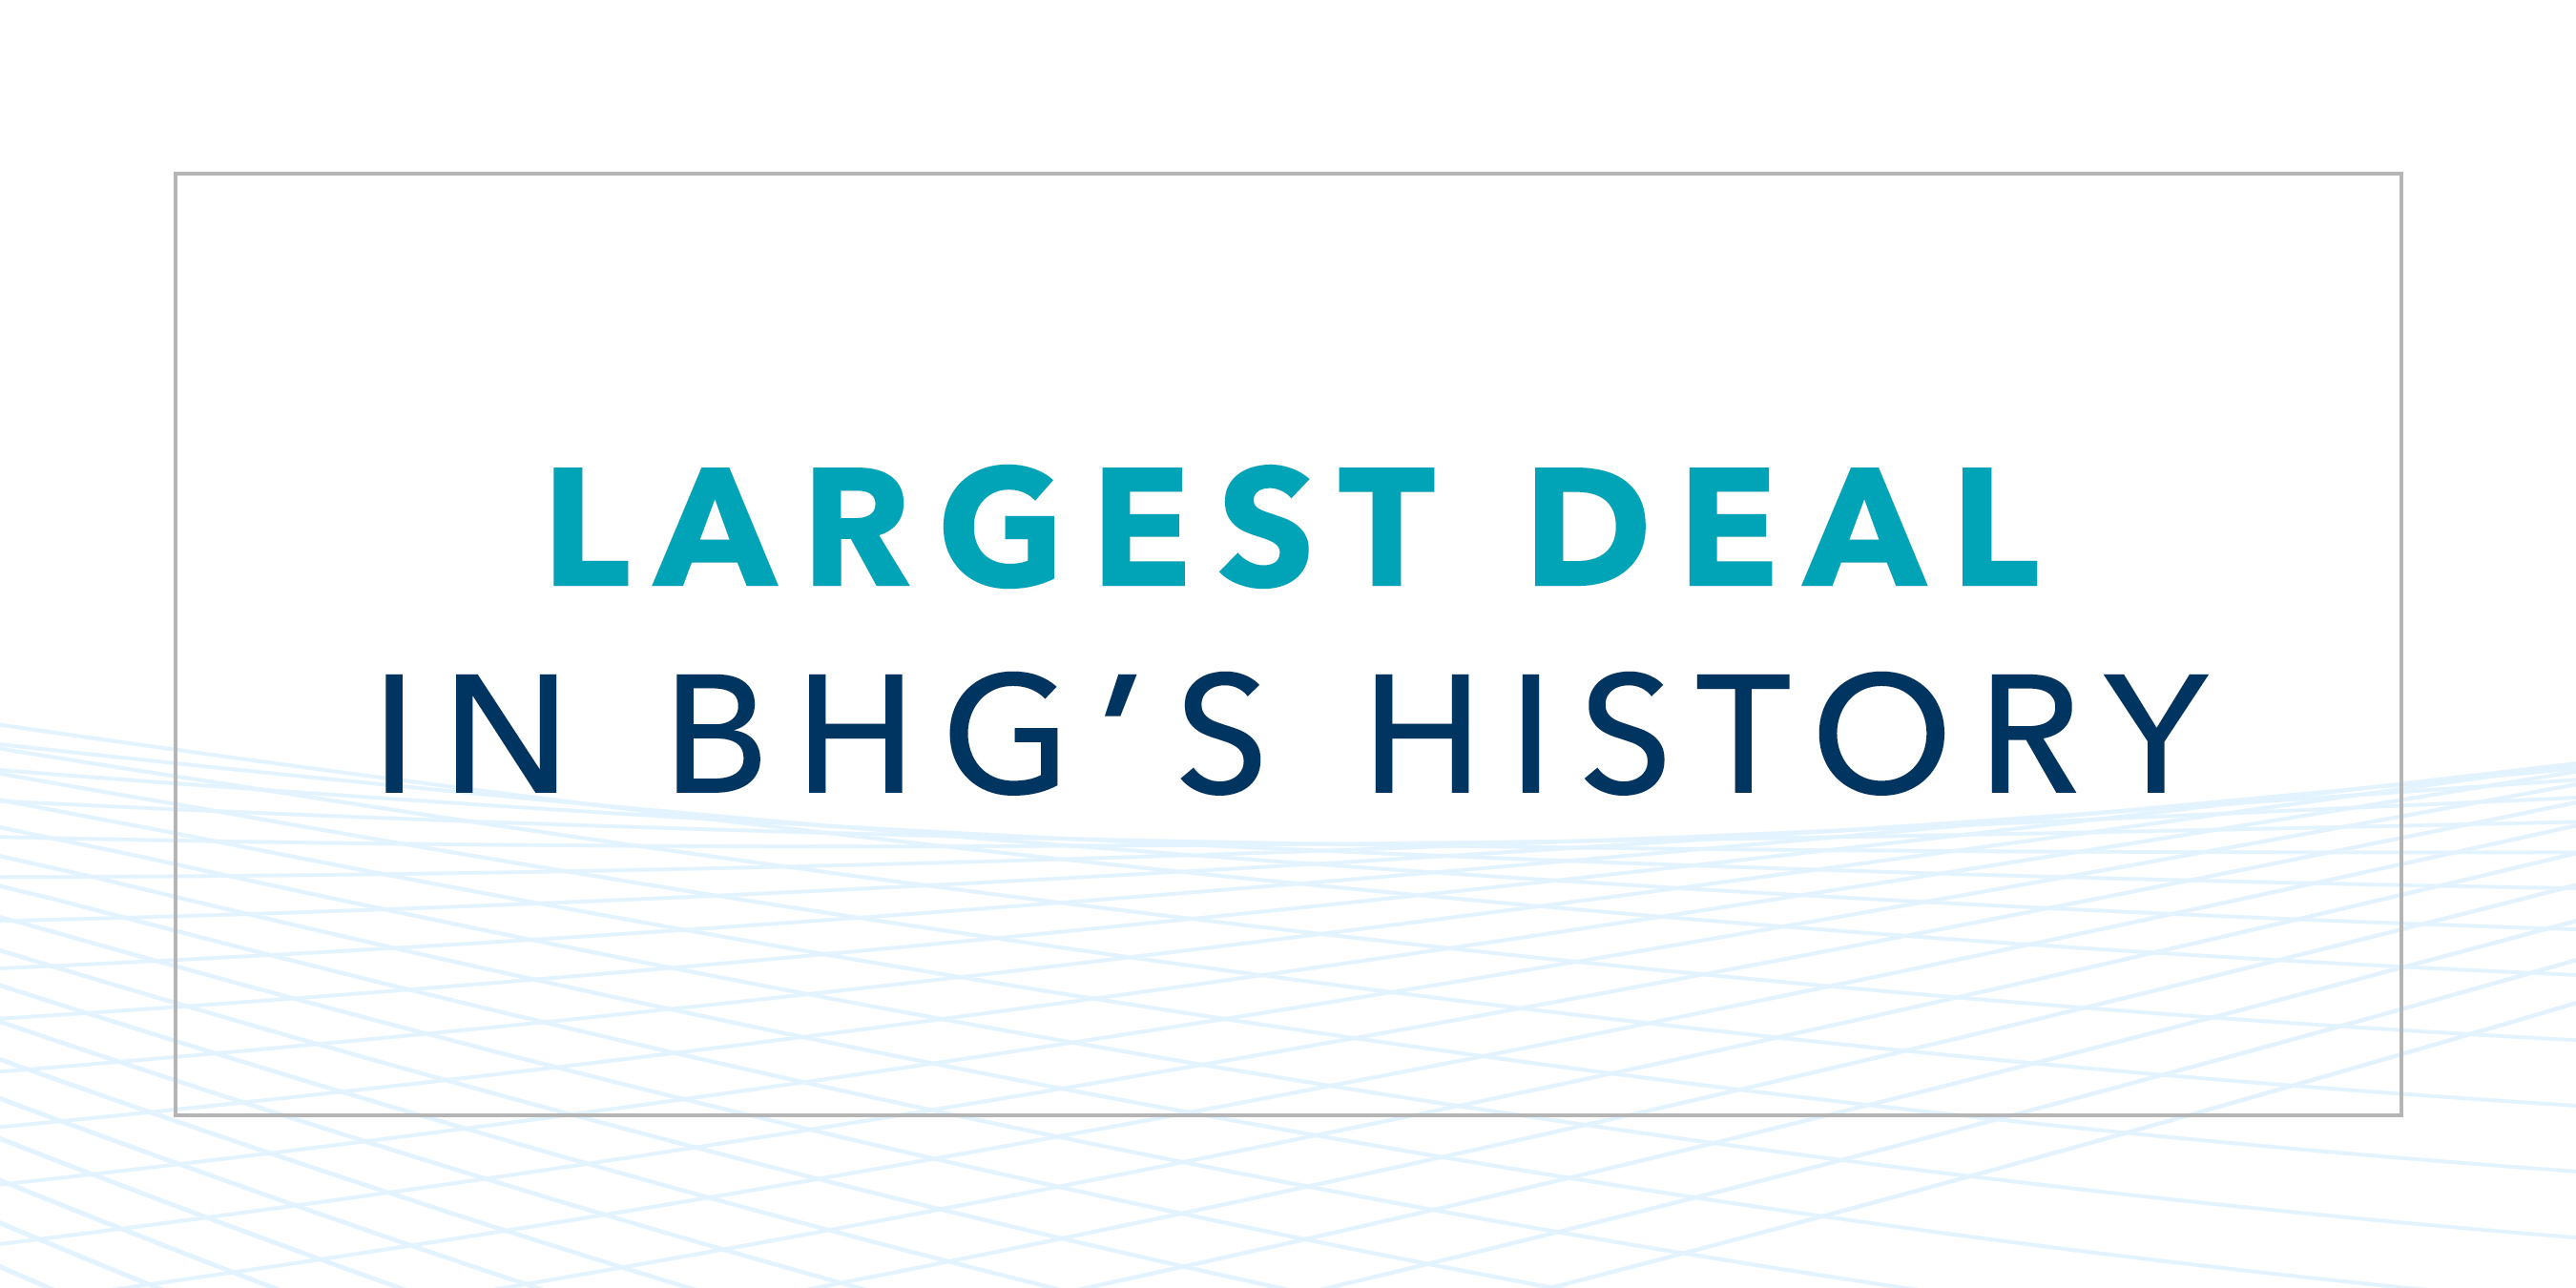 Bankers Healthcare Group Closes Second ABS Transaction, Issues Nearly $350 Million in Notes